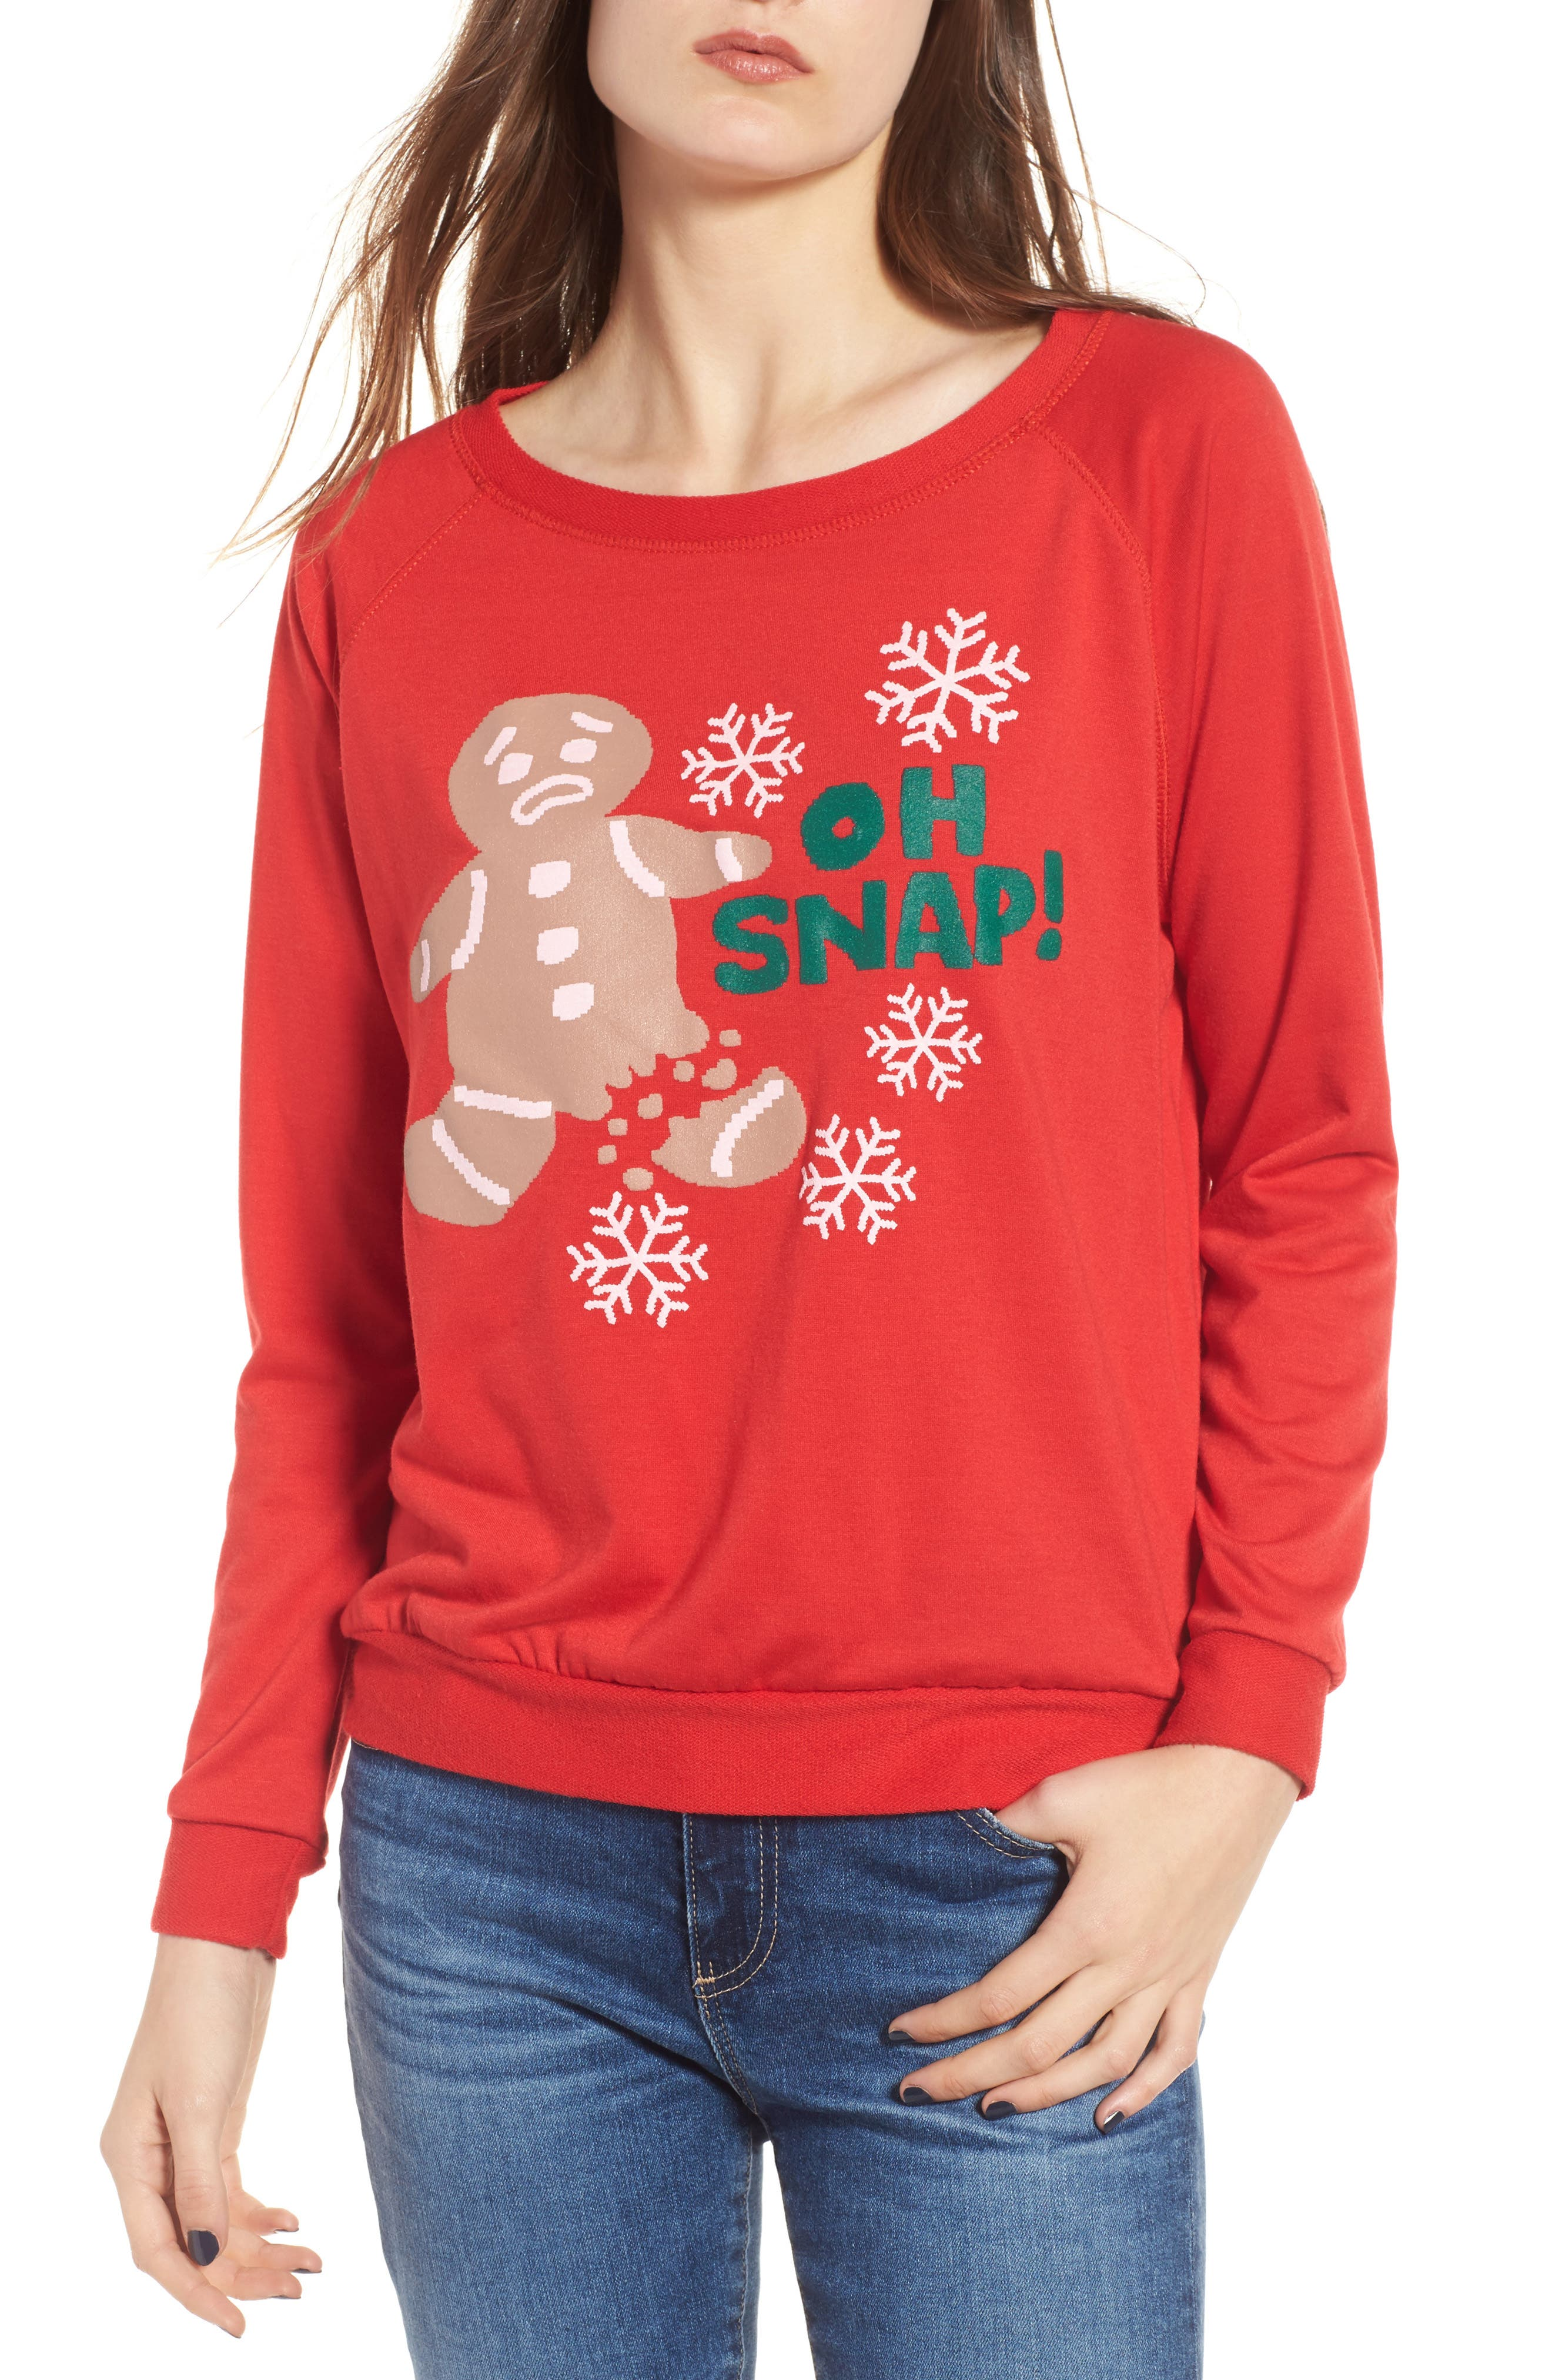 Oh Snap Sweatshirt,                         Main,                         color, Red